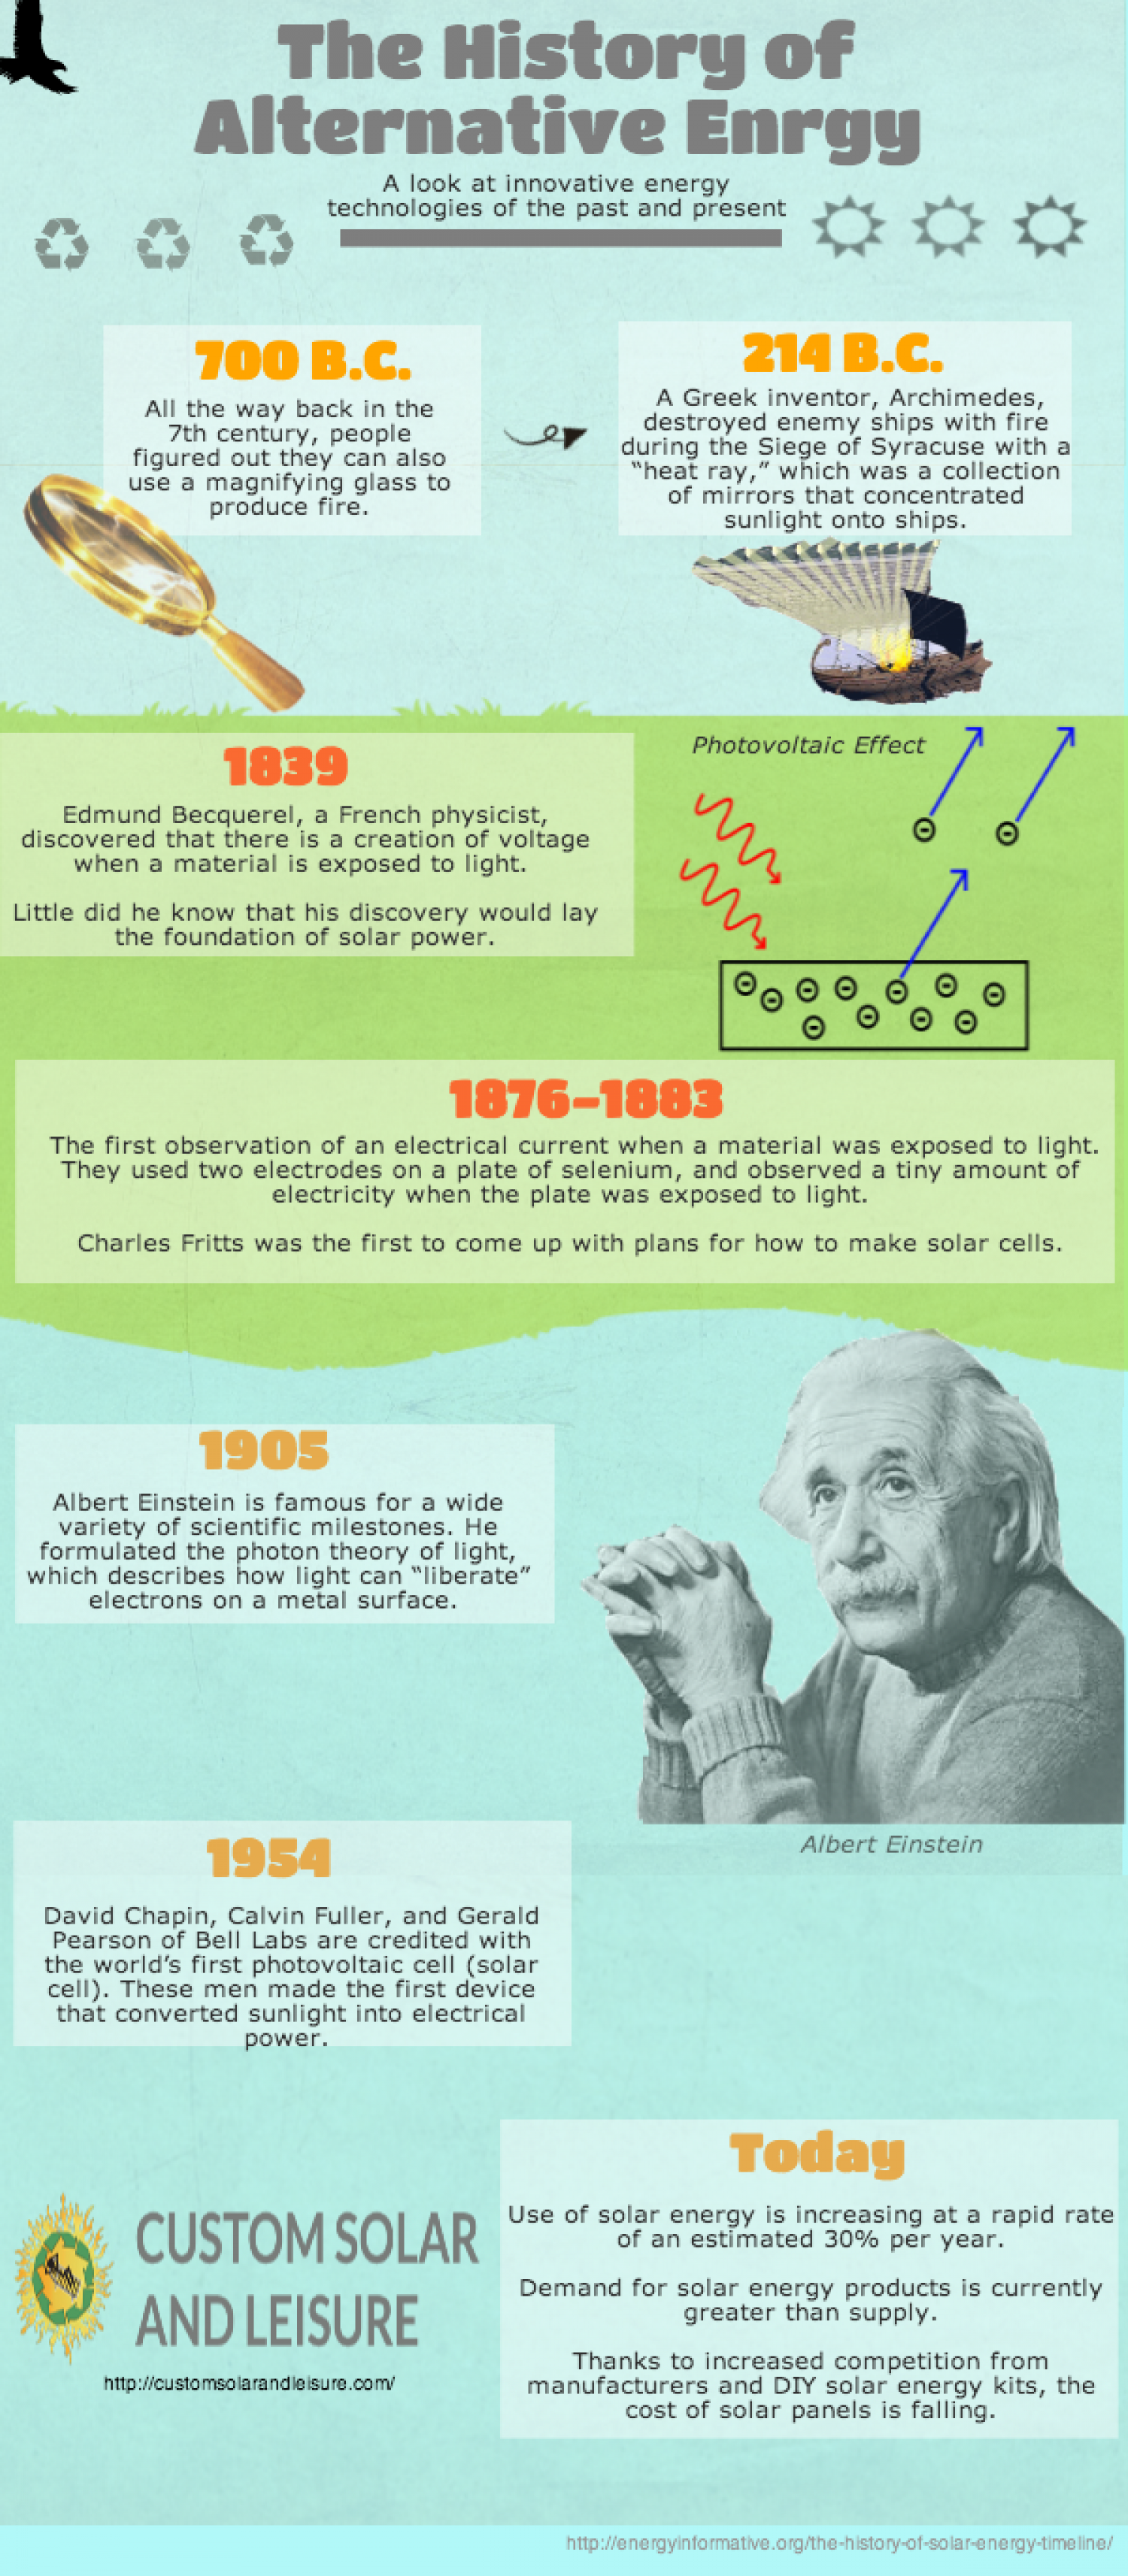 The History of Alternative Energy Infographic